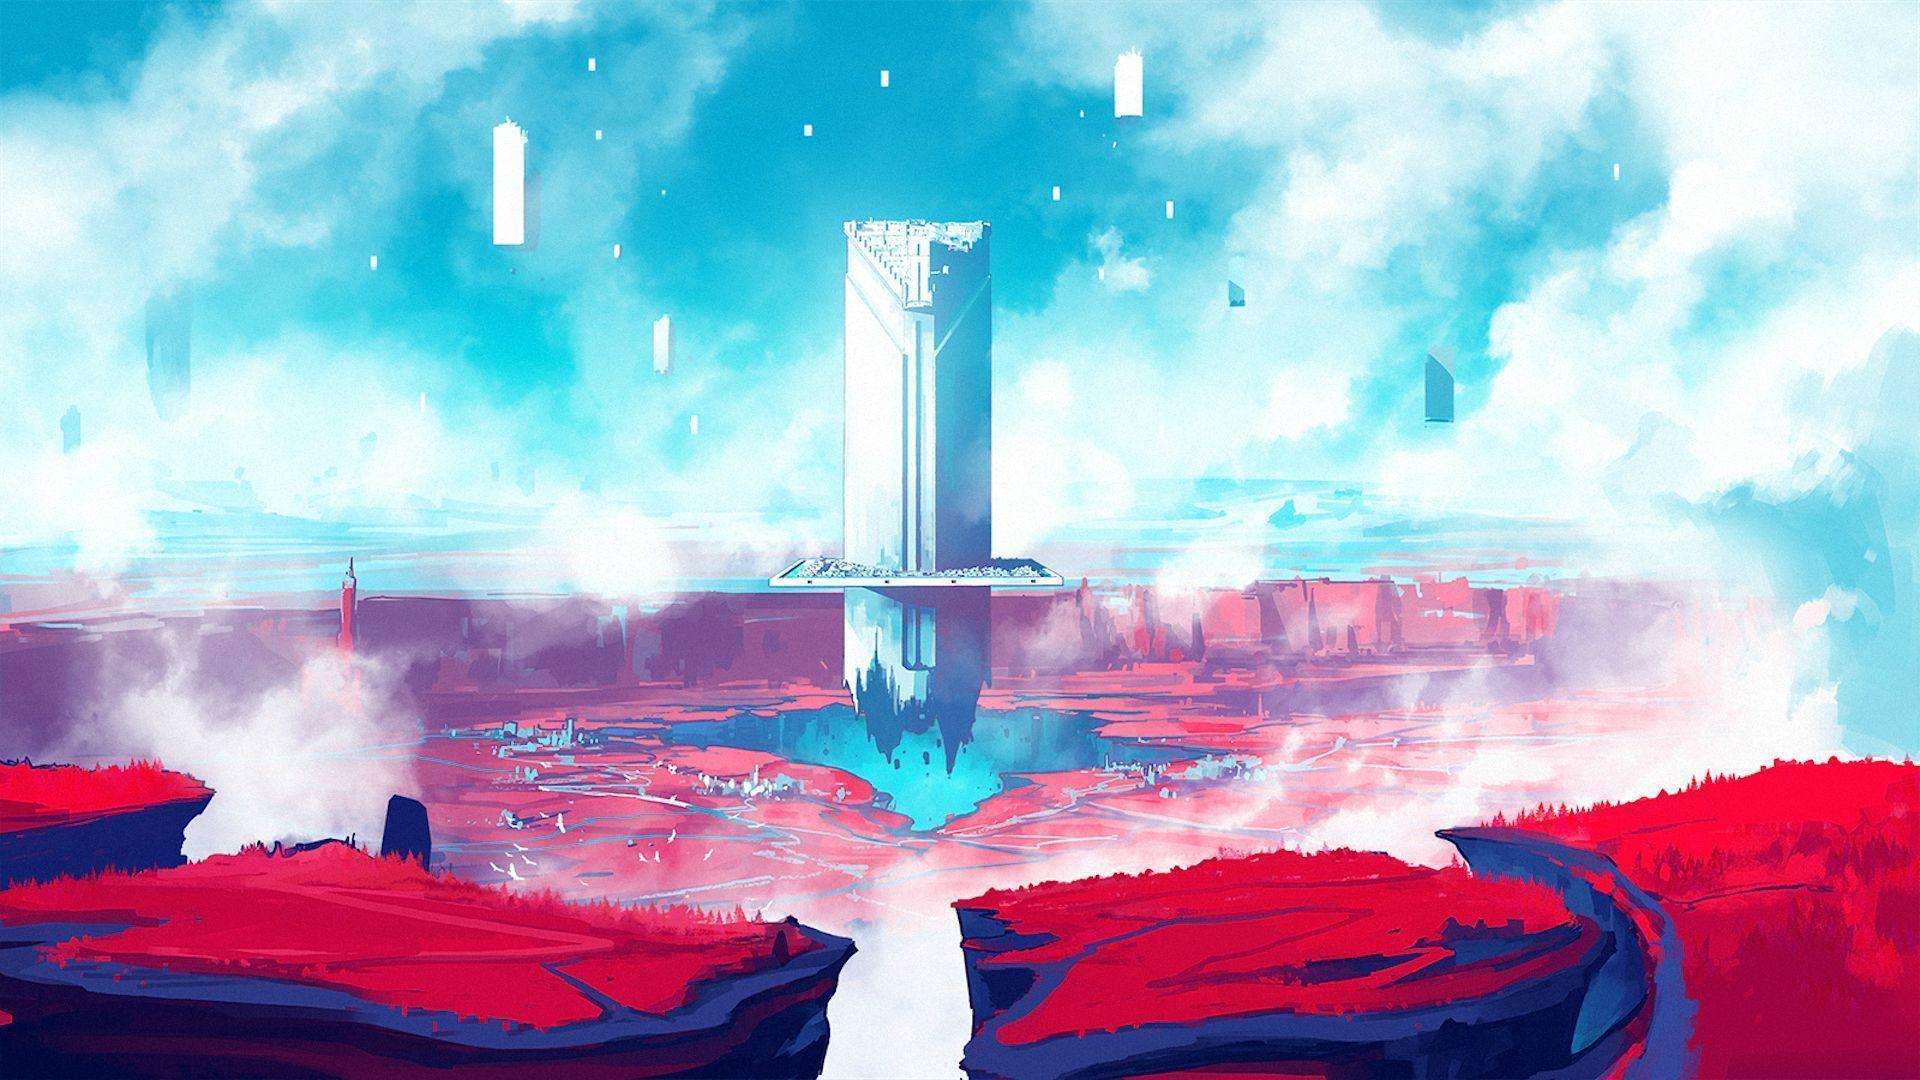 No Mans Sky Wallpapers Top Free No Mans Sky Backgrounds